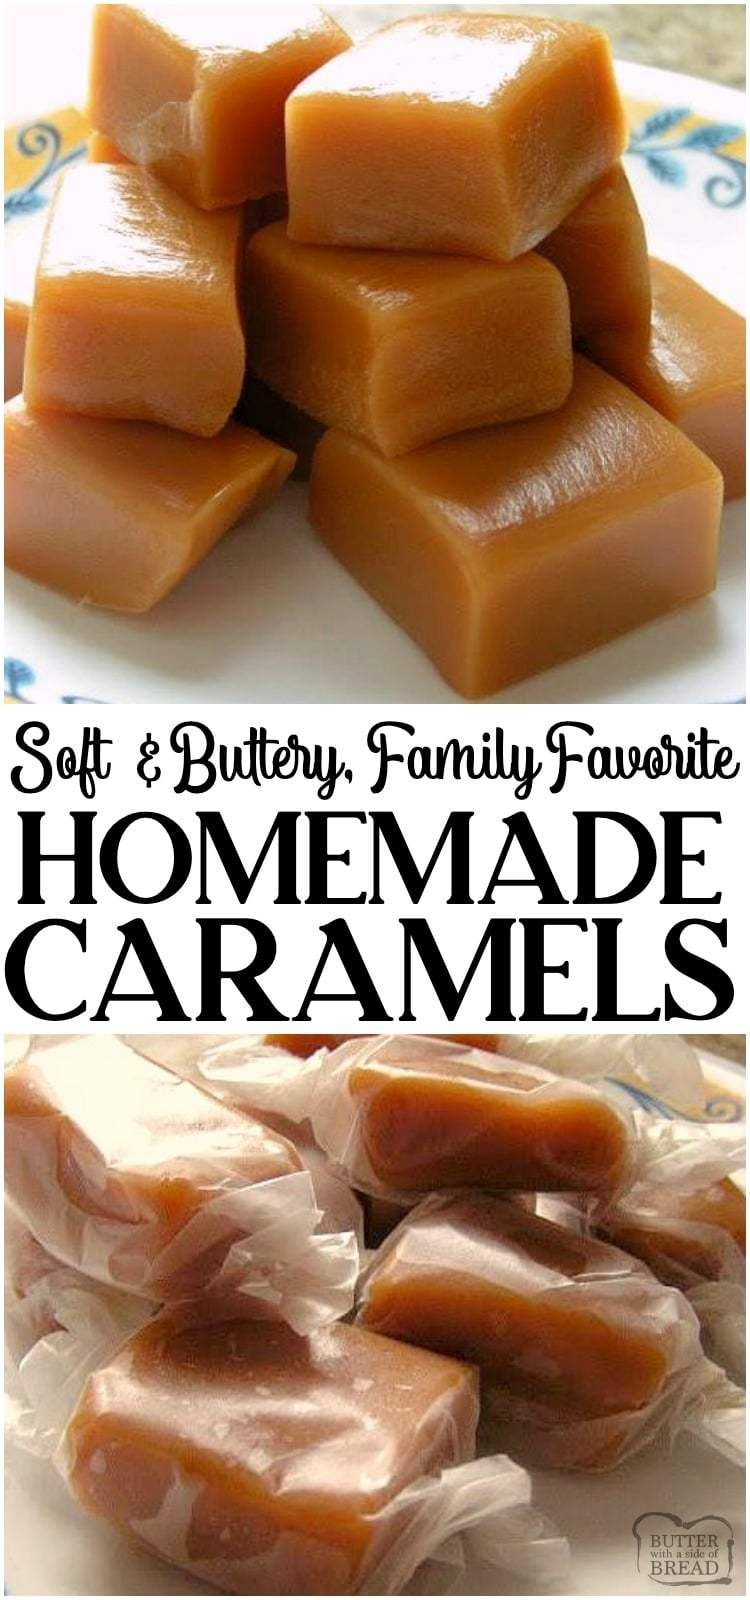 BEST HOMEMADE CARAMELS RECIPE - Butter with a Side of Bread